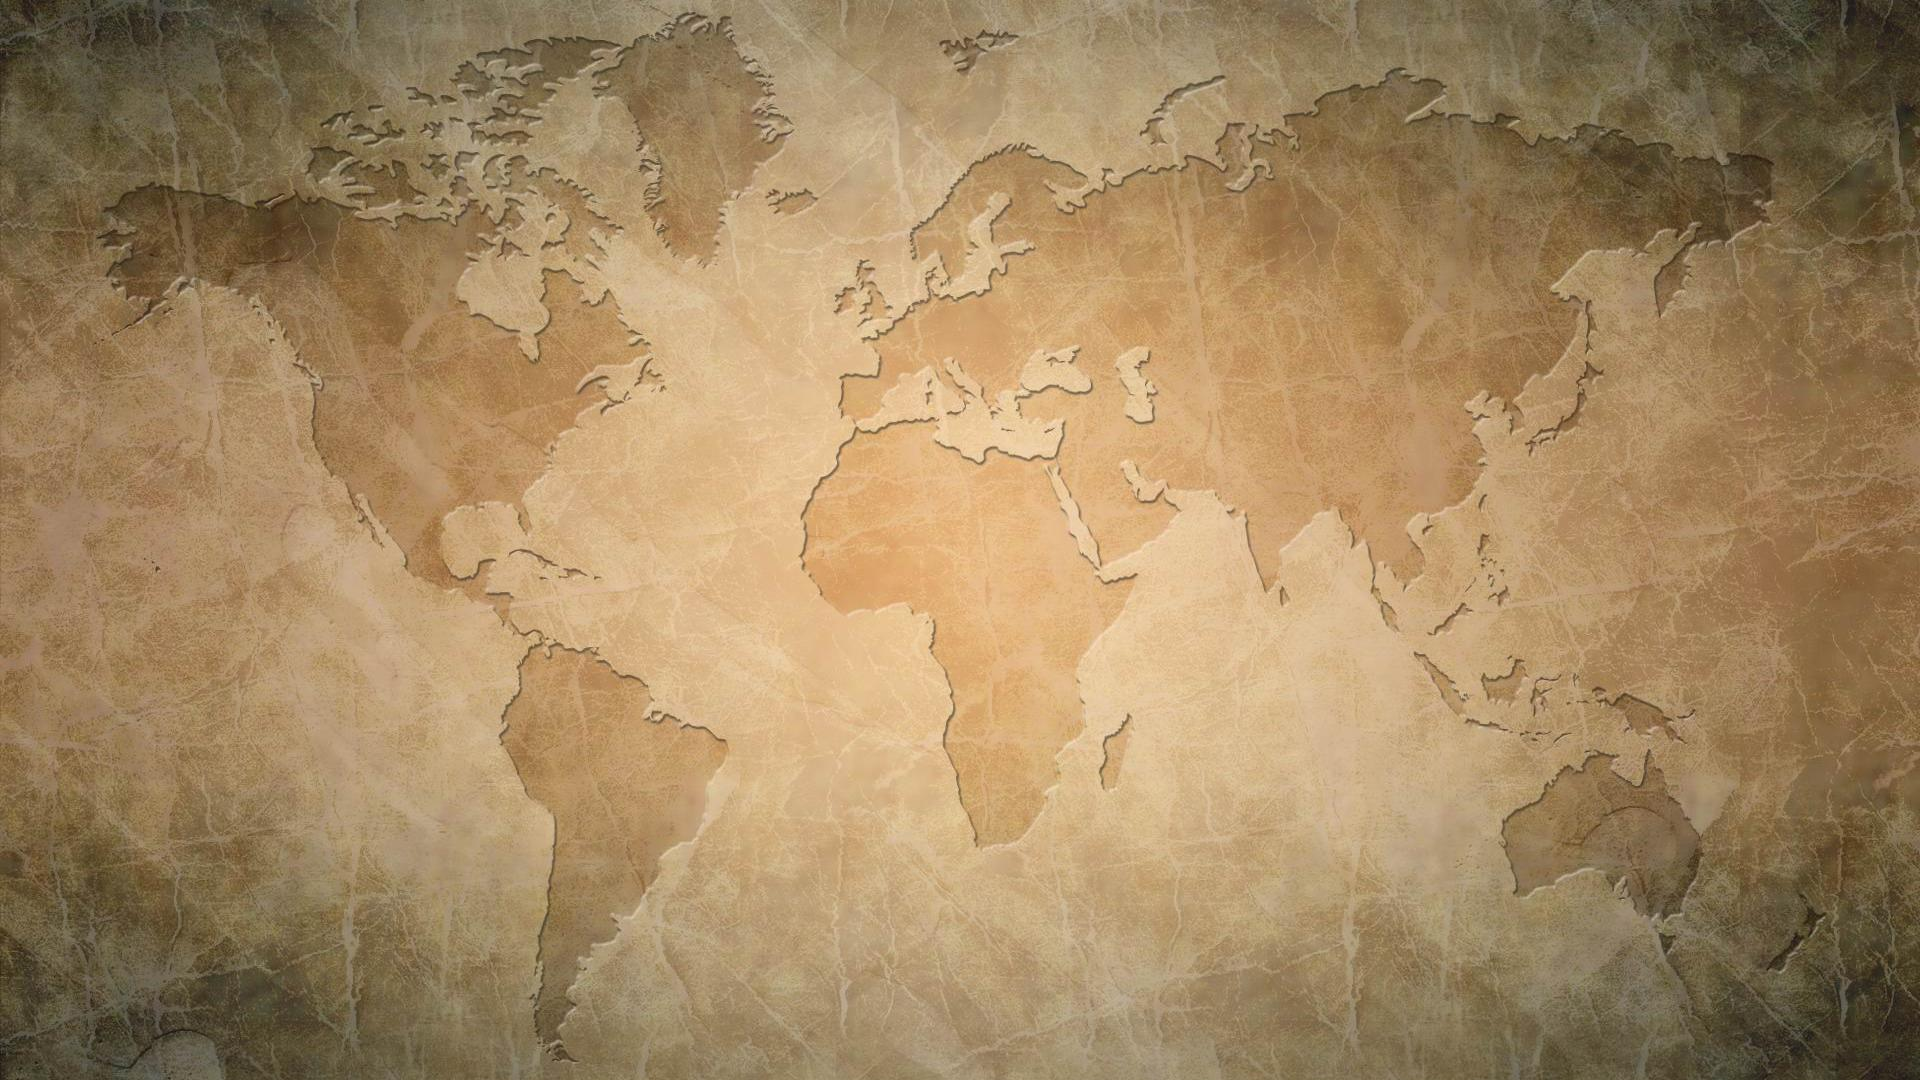 World map desktop wallpaper 51295 1920x1080px world map desktop wallpaper 51295 gumiabroncs